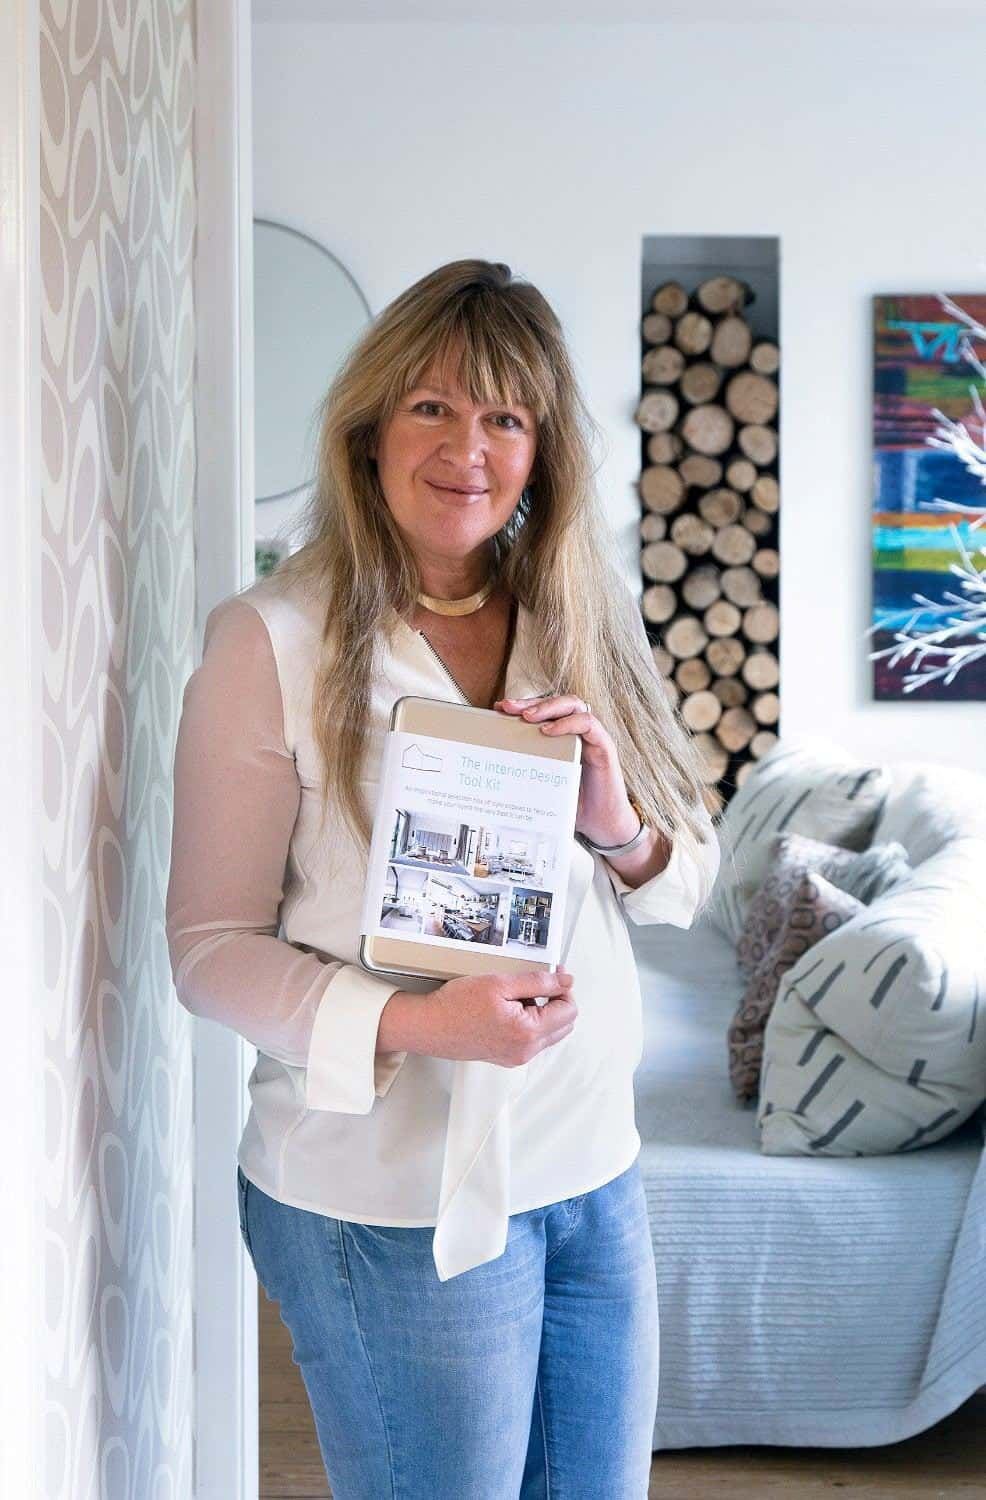 Alison Gibb Inventor of the Interior Design Toolkit